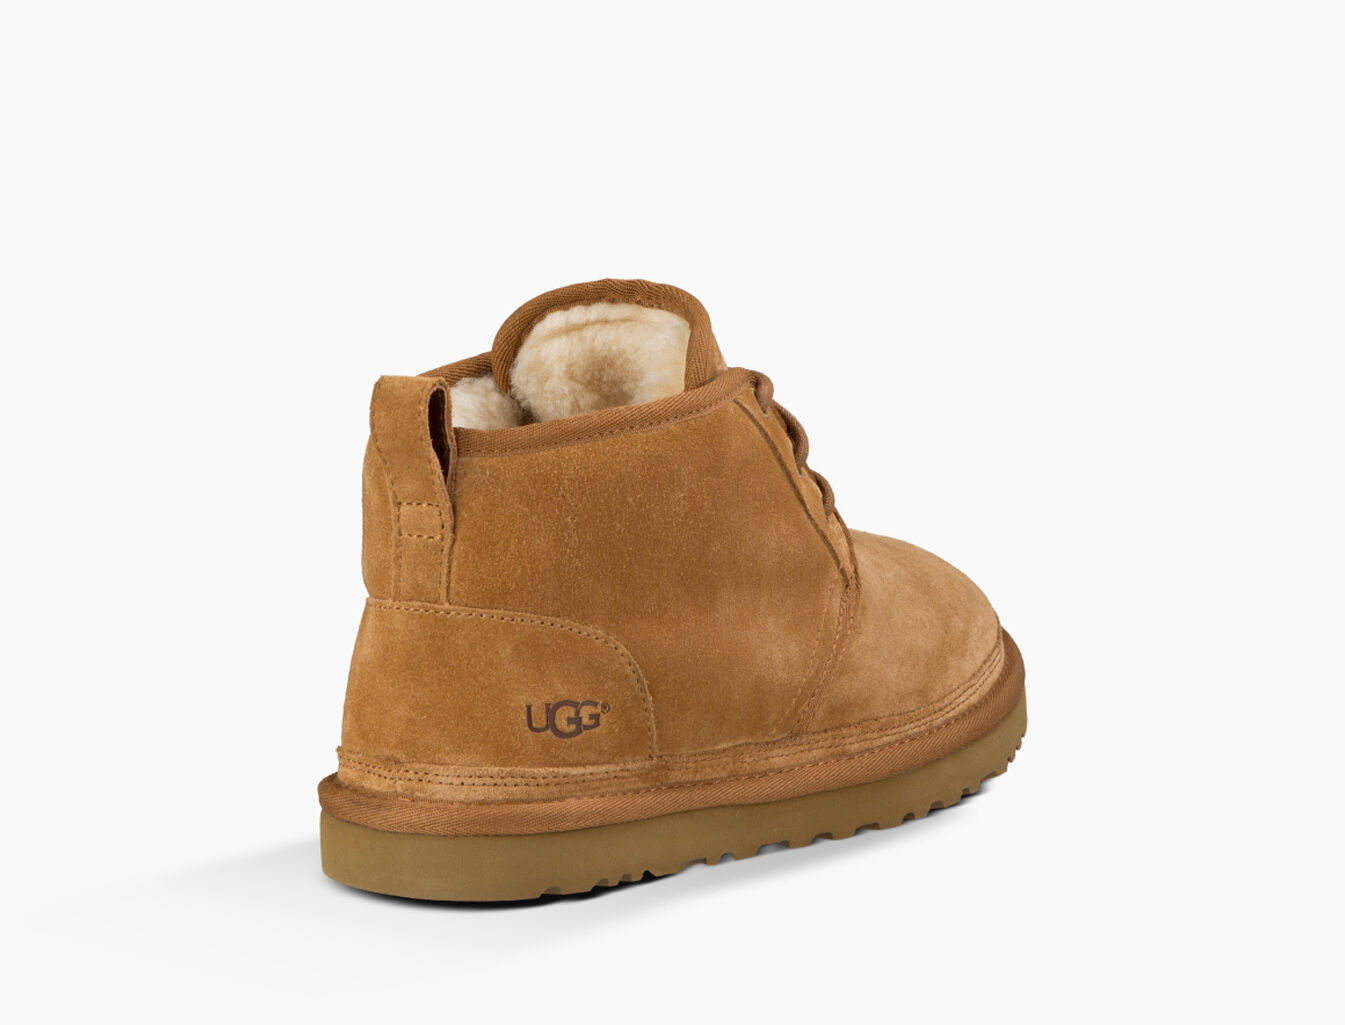 18 Pairs of Cheap UGG Boots for Women, Men and Kids